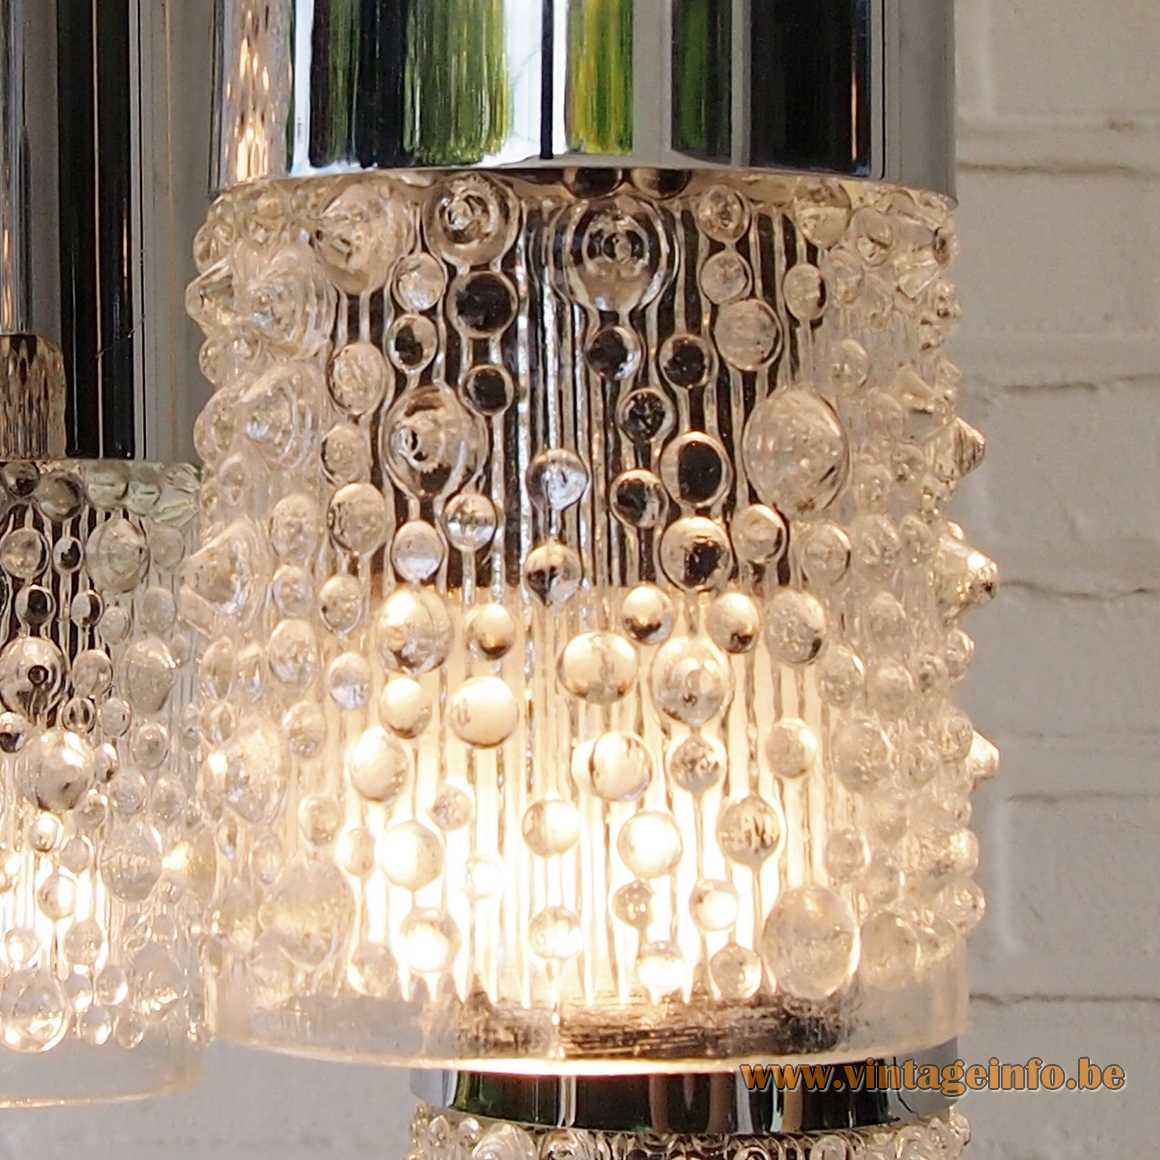 AKA Electric cascade pendant chandelier 8 candle wax drops glass lampshades VEB Leuchtenbau 1970s East Germany